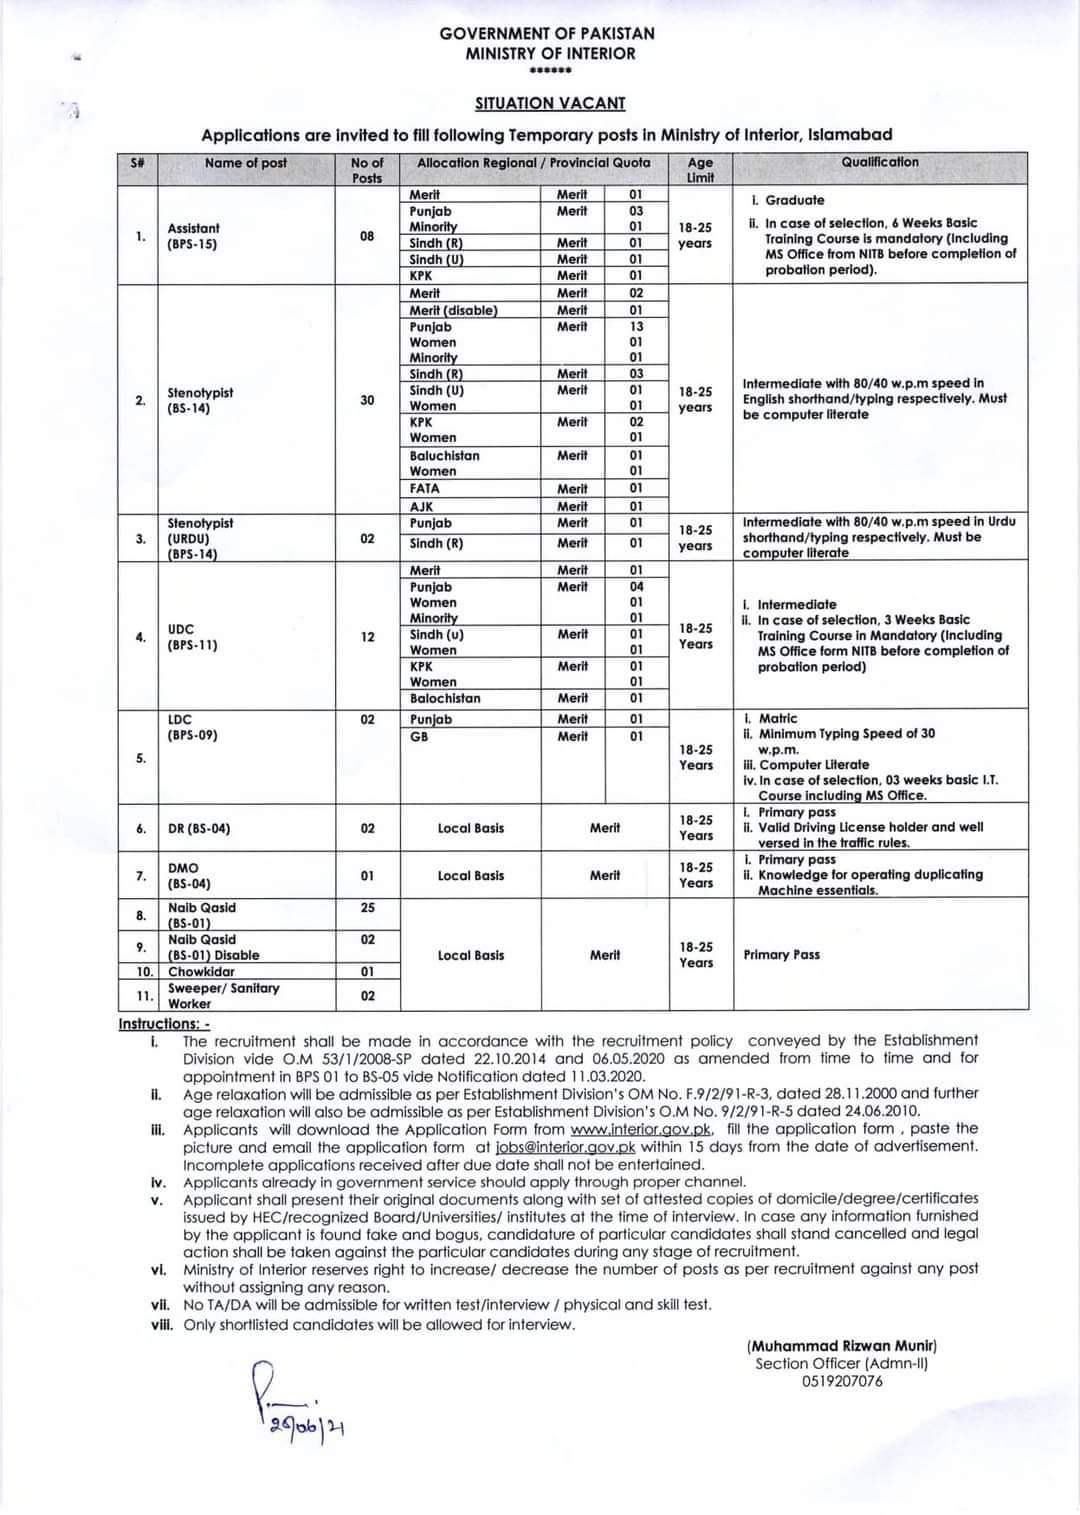 Government of Pakistan Ministry of Interior Jobs 2021